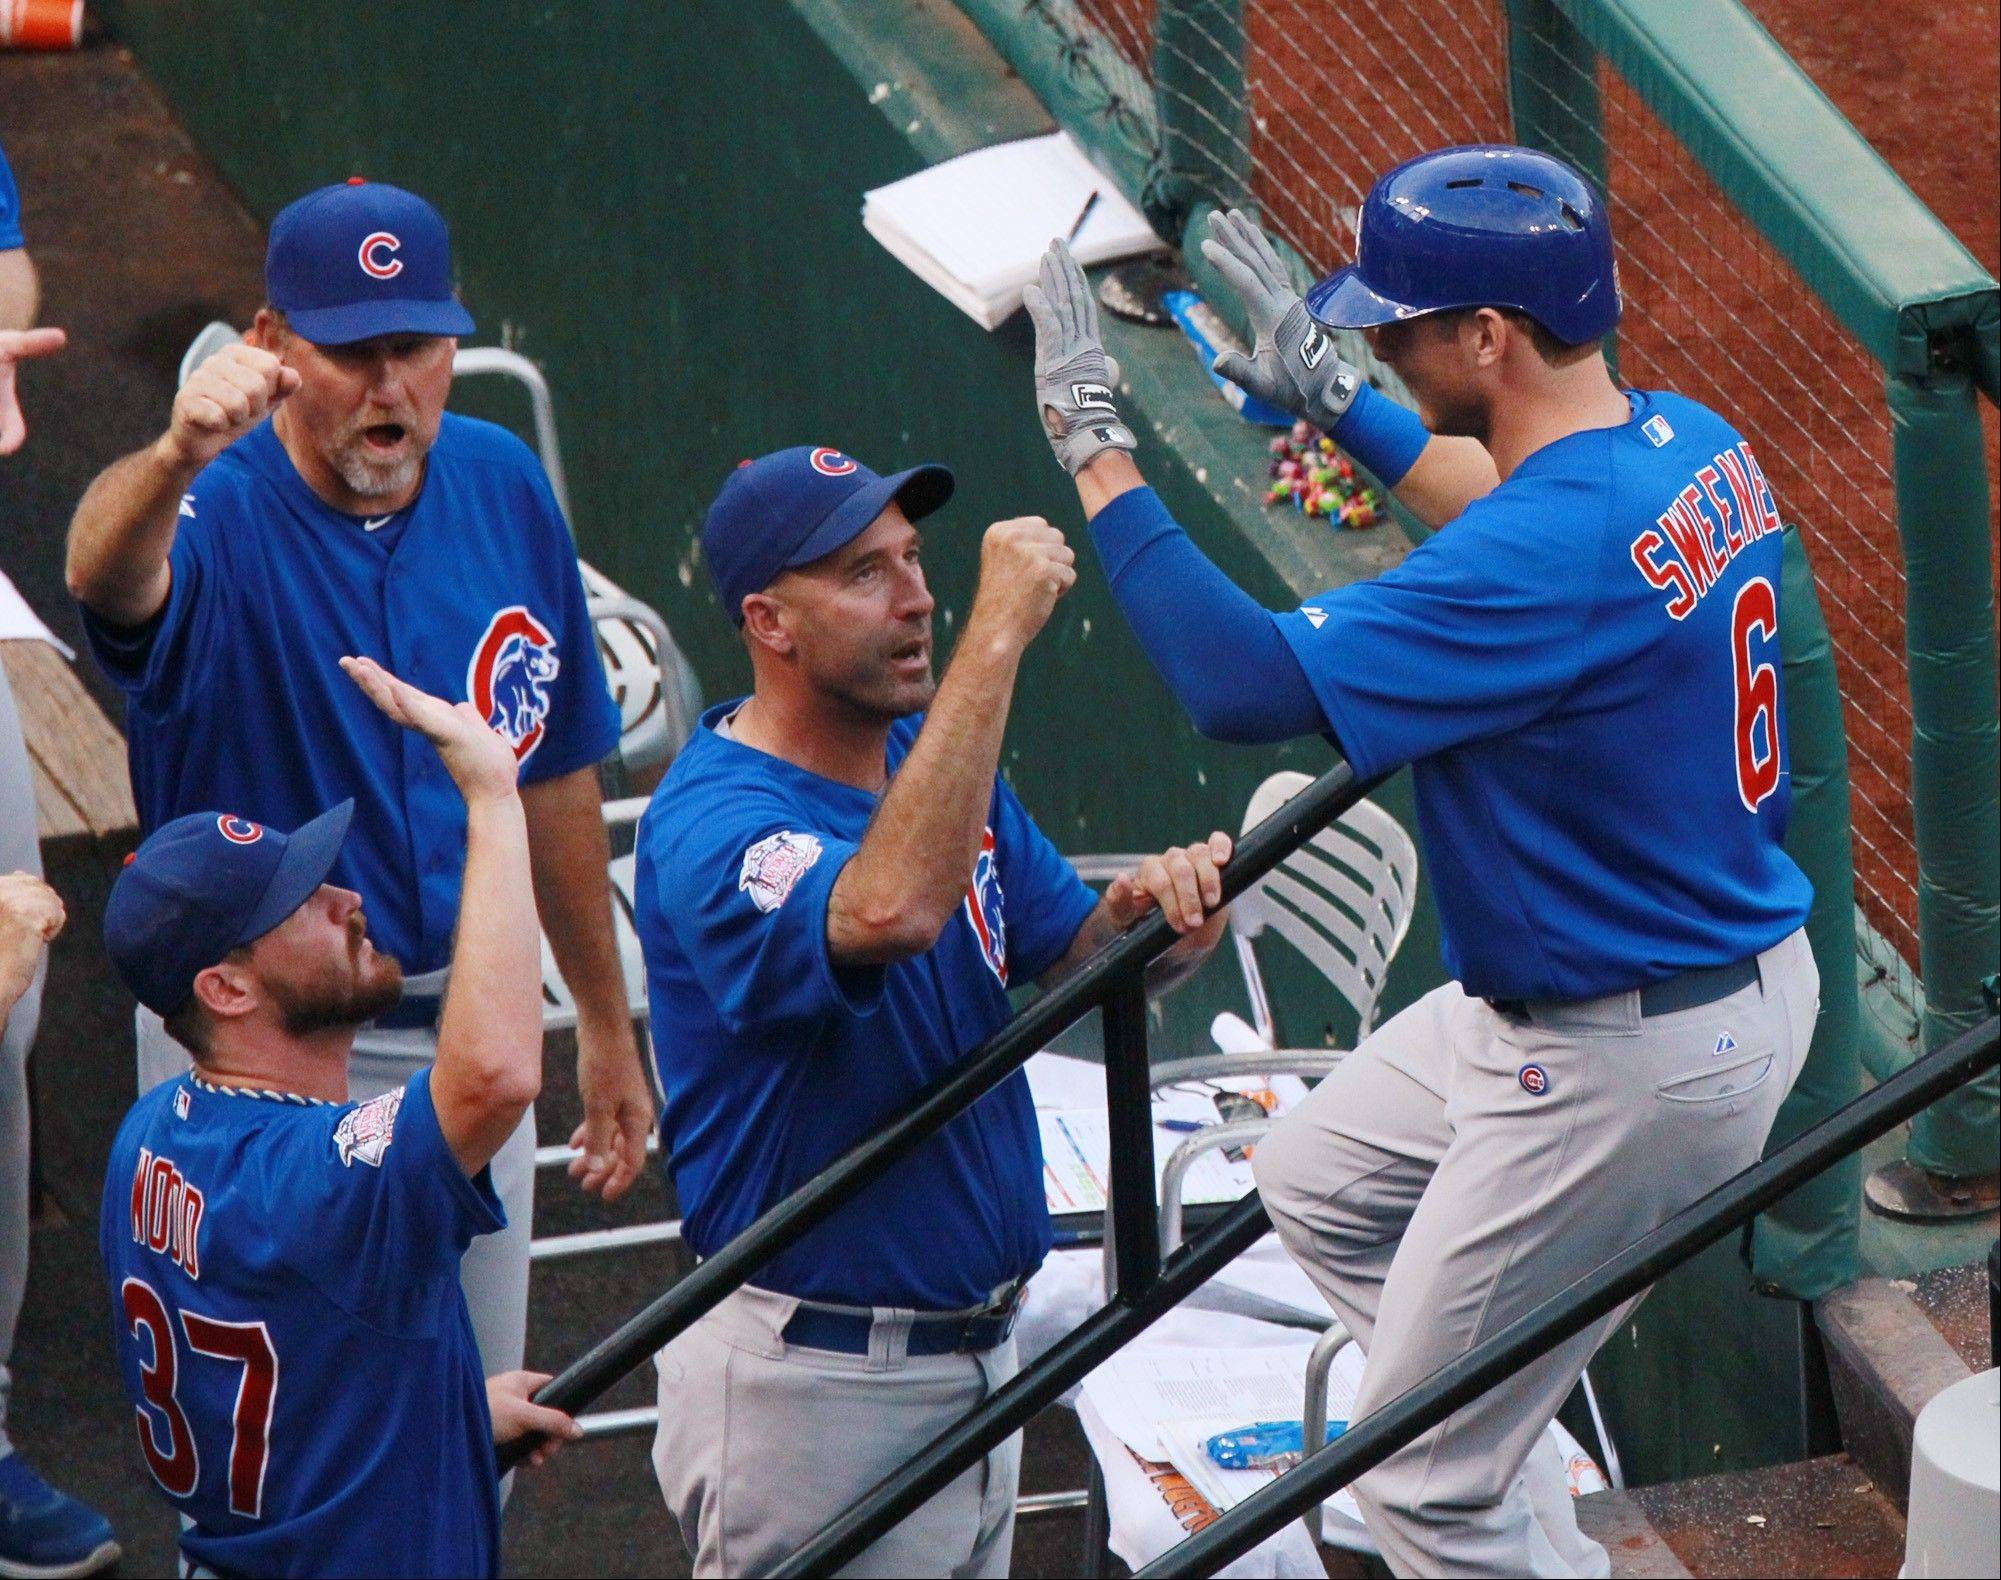 Chicago Cubs' Ryan Sweeney, right, is congratulated by manager Dale Sveum, center, as he returns to the dugout after hitting a two-run home run in the first inning of a baseball game against the St. Louis Cardinals on Tuesday, June 18, 2013, in St. Louis.